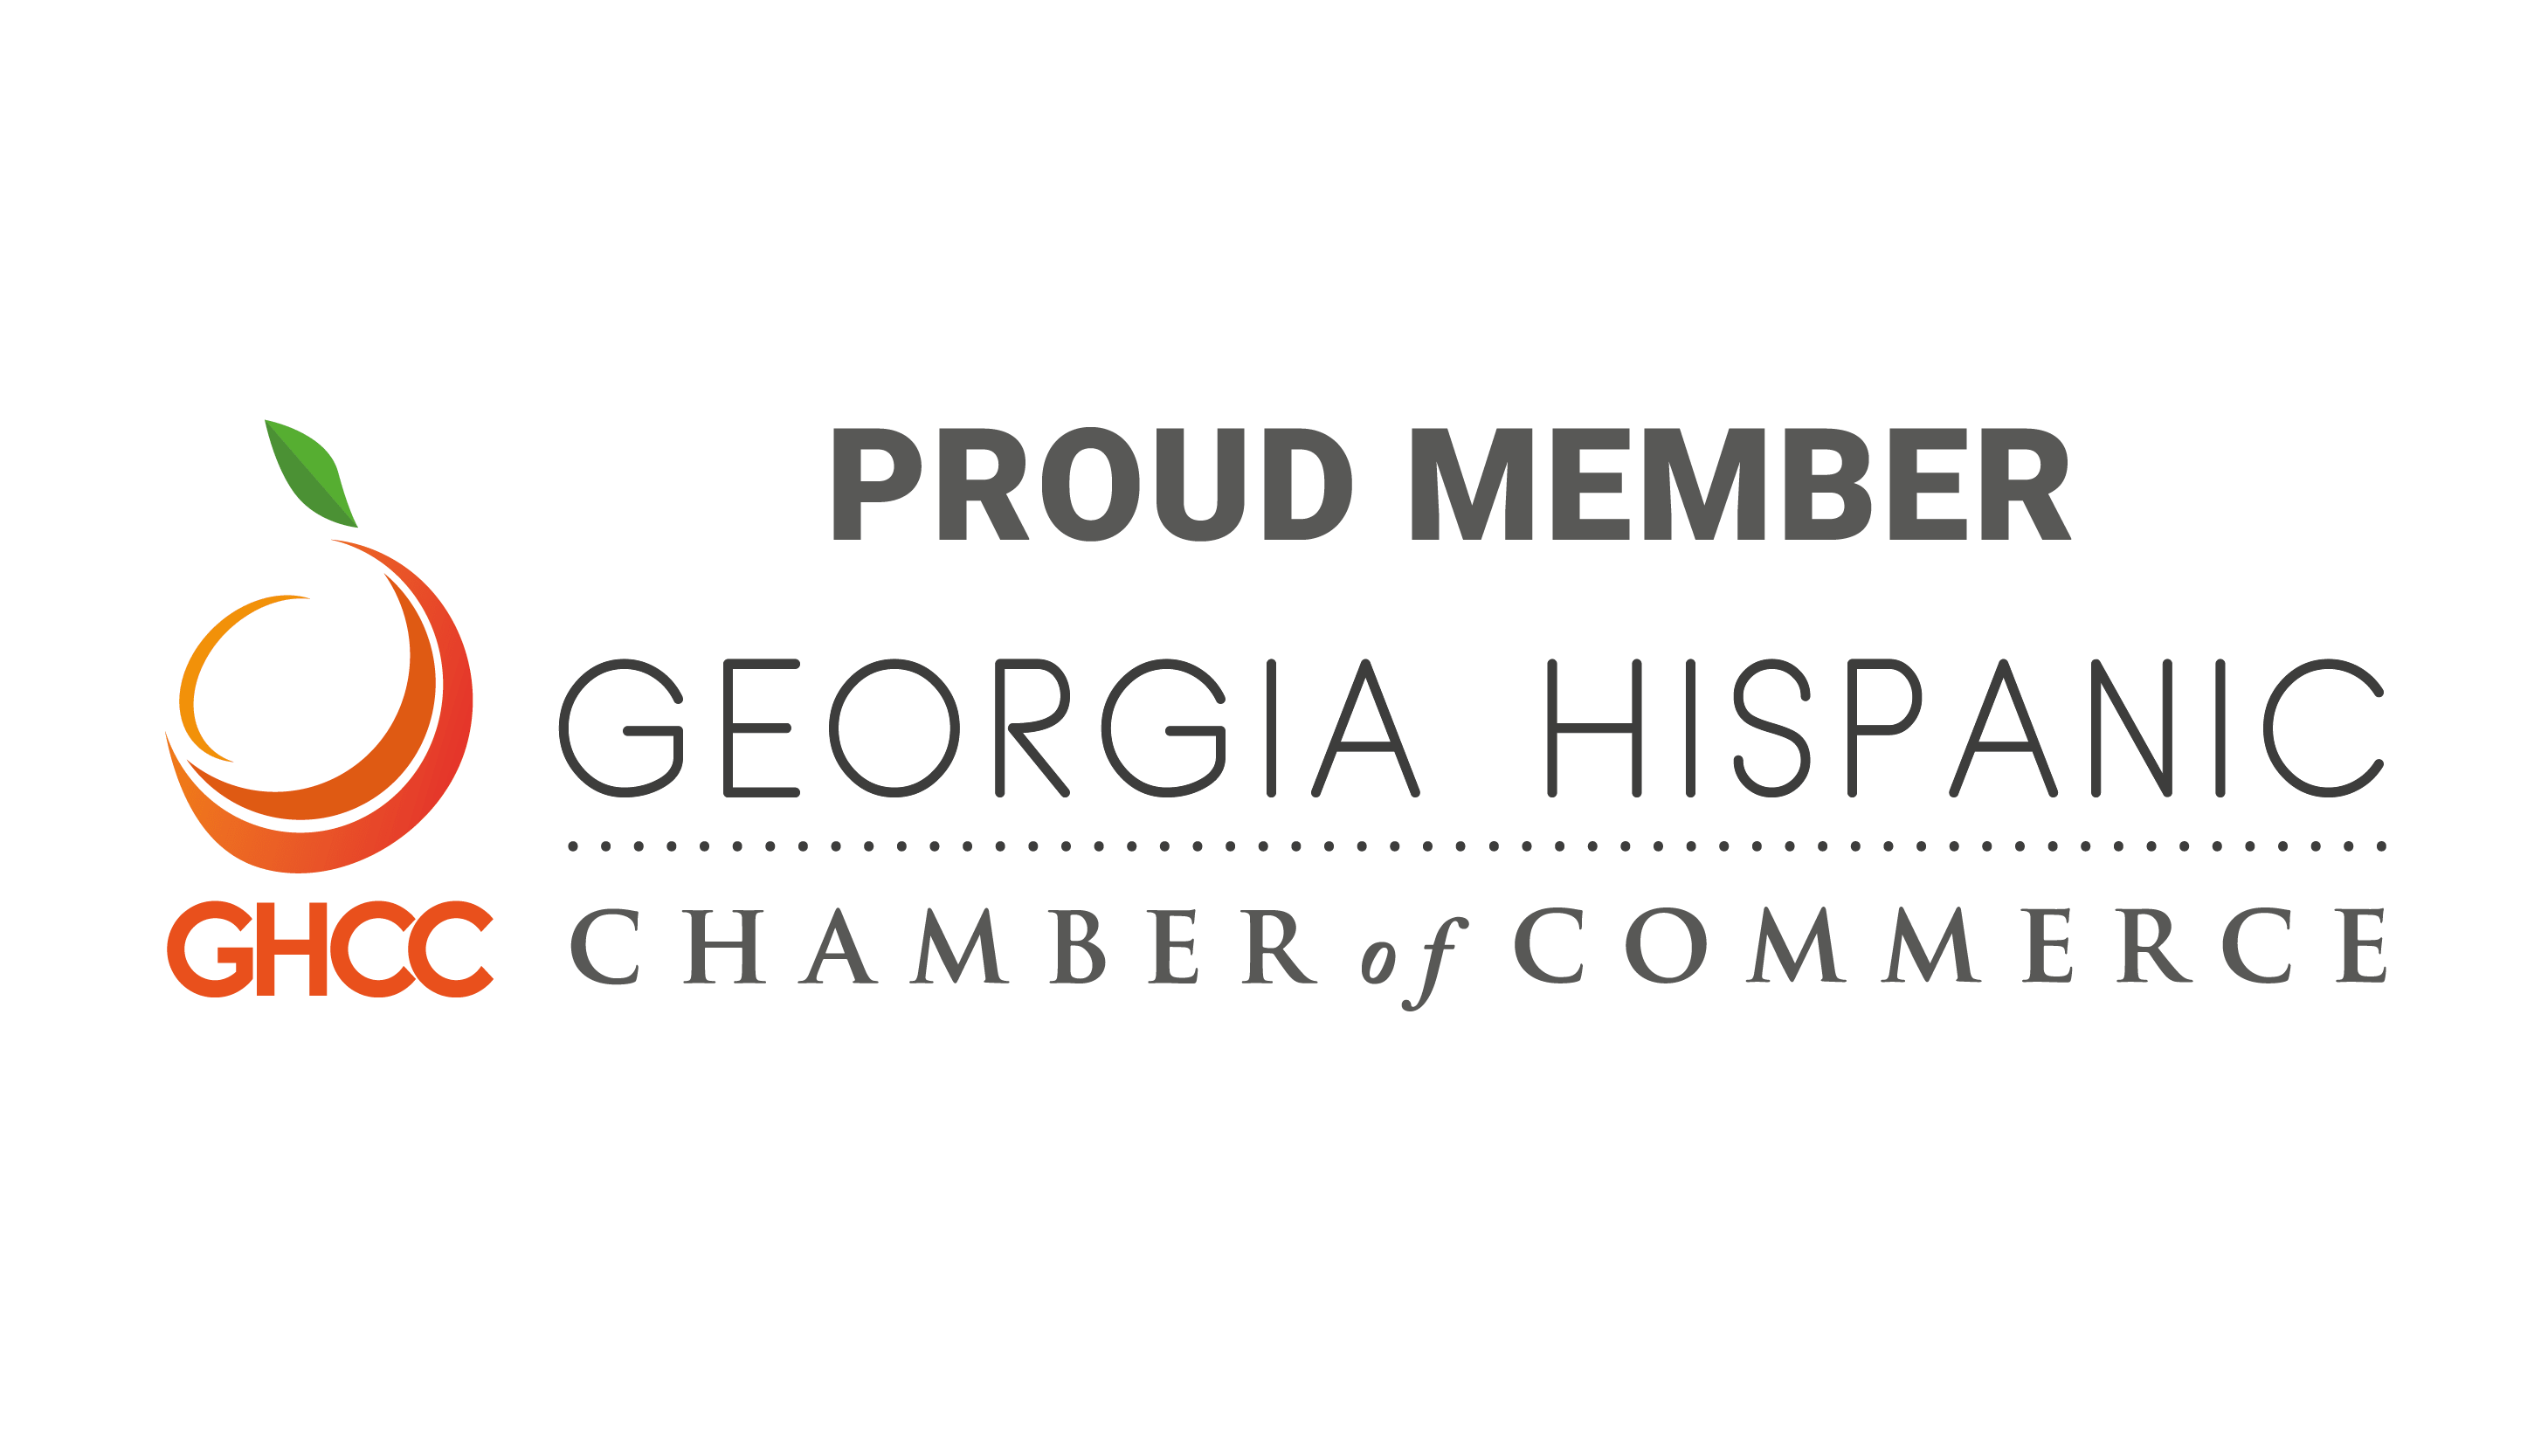 Proud Member of Georgia Hispanic Chamber of Commerce